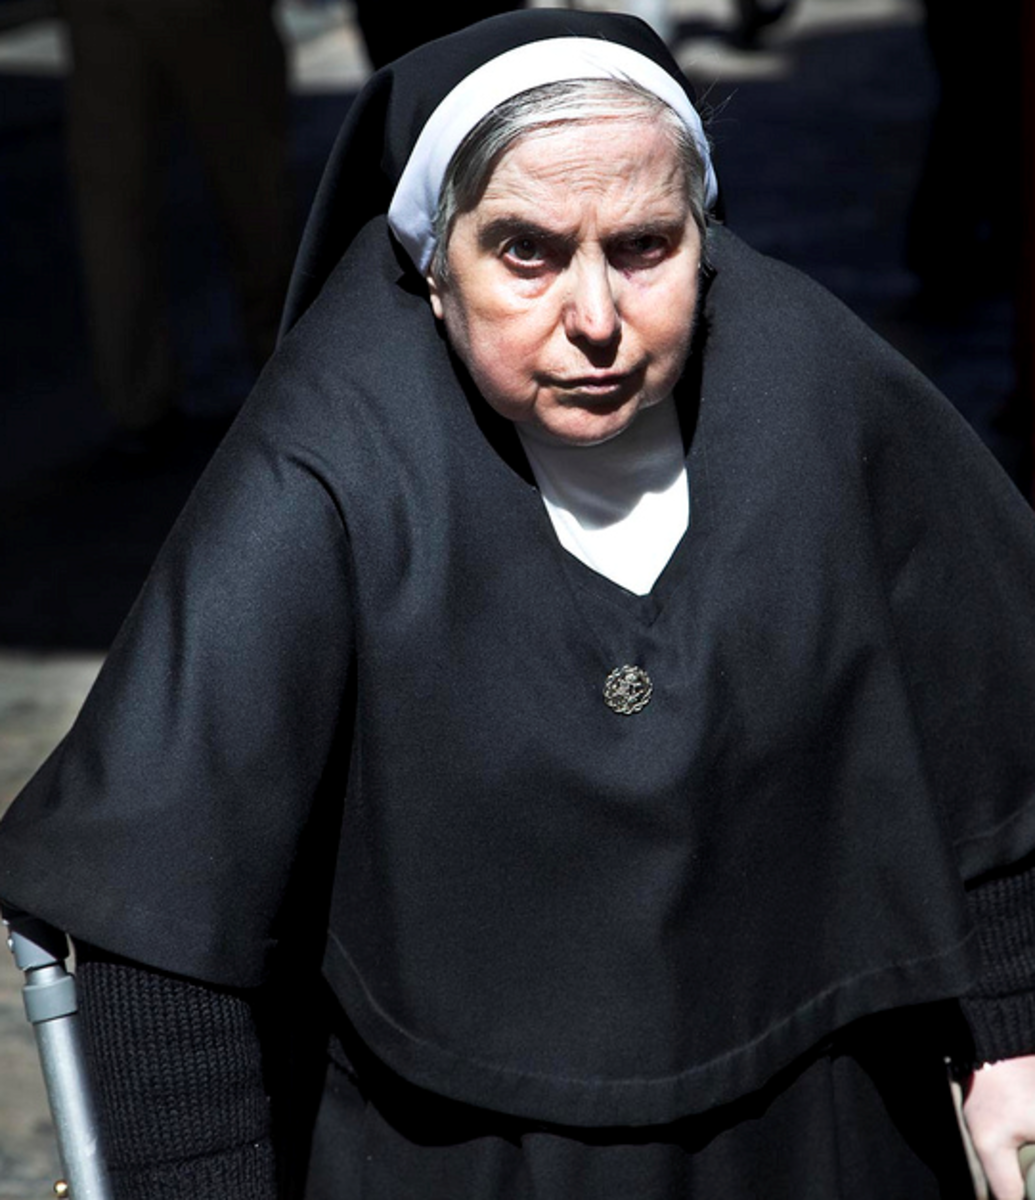 I was manhandled by a nun when I was 6. That experience left me feeling frightened, powerless, and always wanting to please.